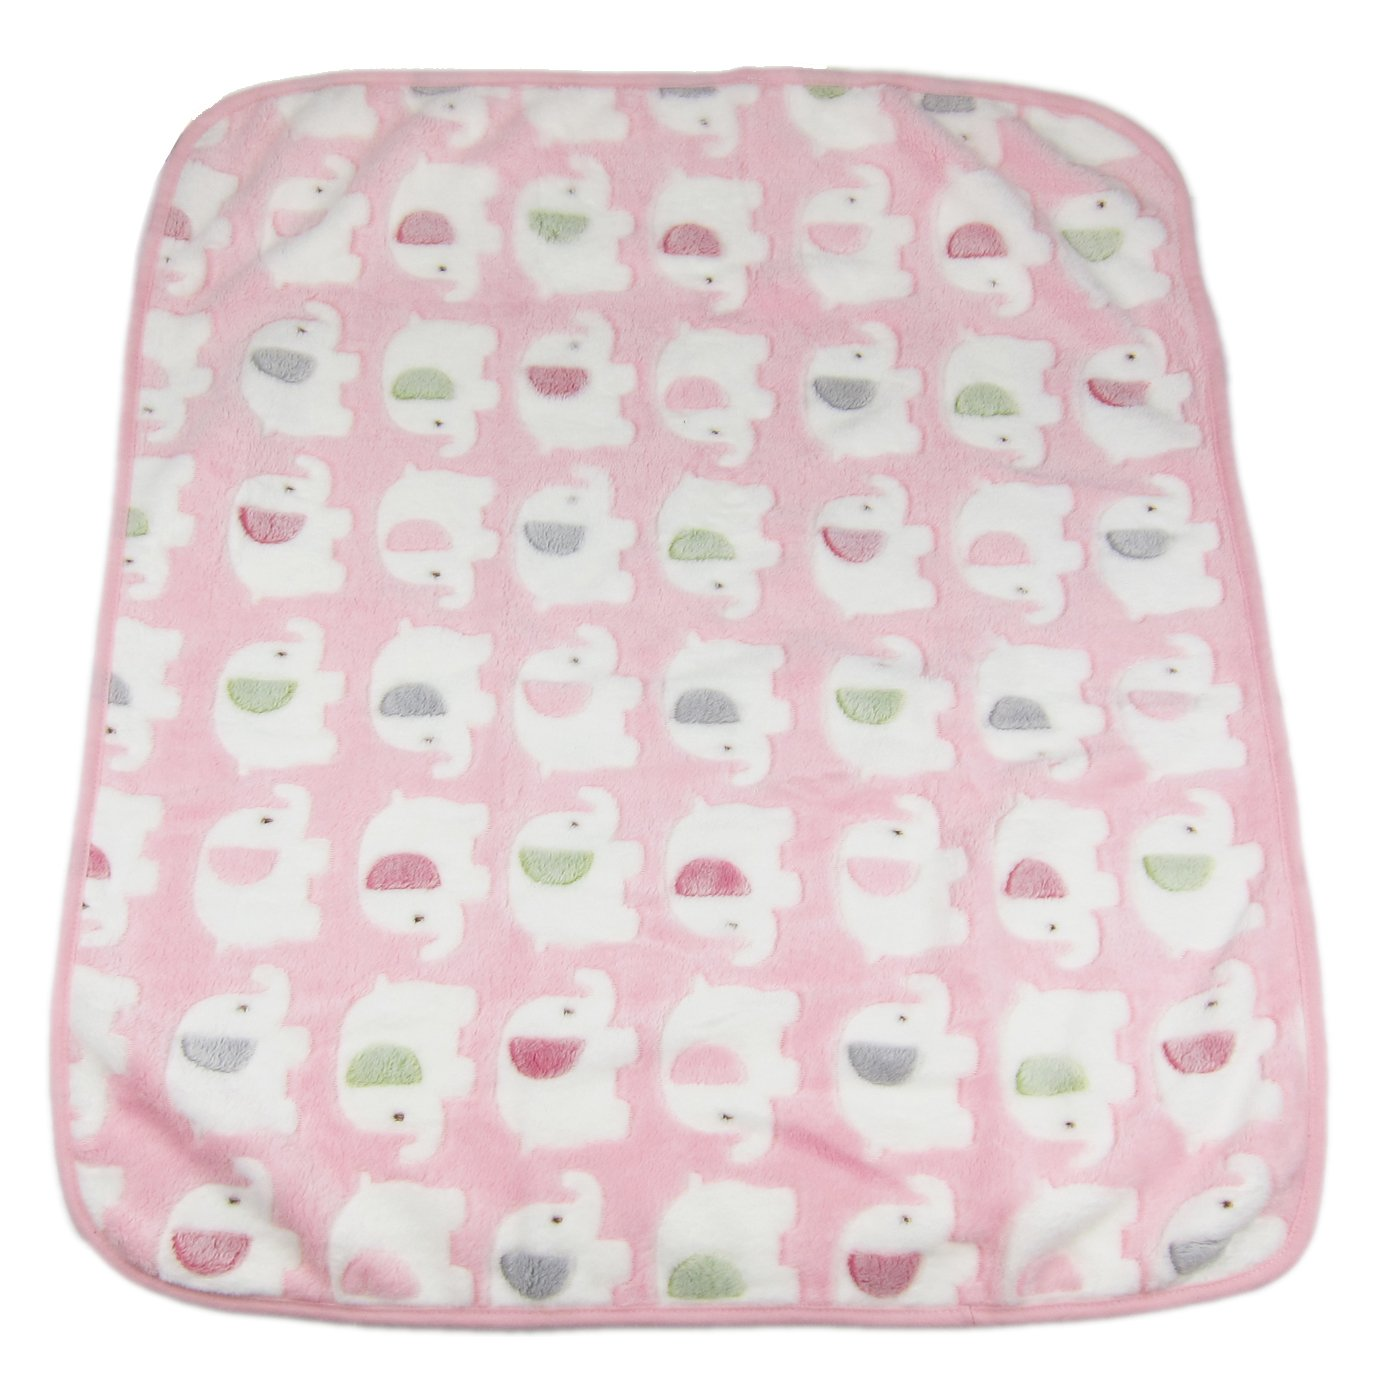 Alfie Pet by Petoga Couture - Abia Animal Blanket for Dogs and Cats - Color: Pink, Size: Large by Alfie (Image #2)